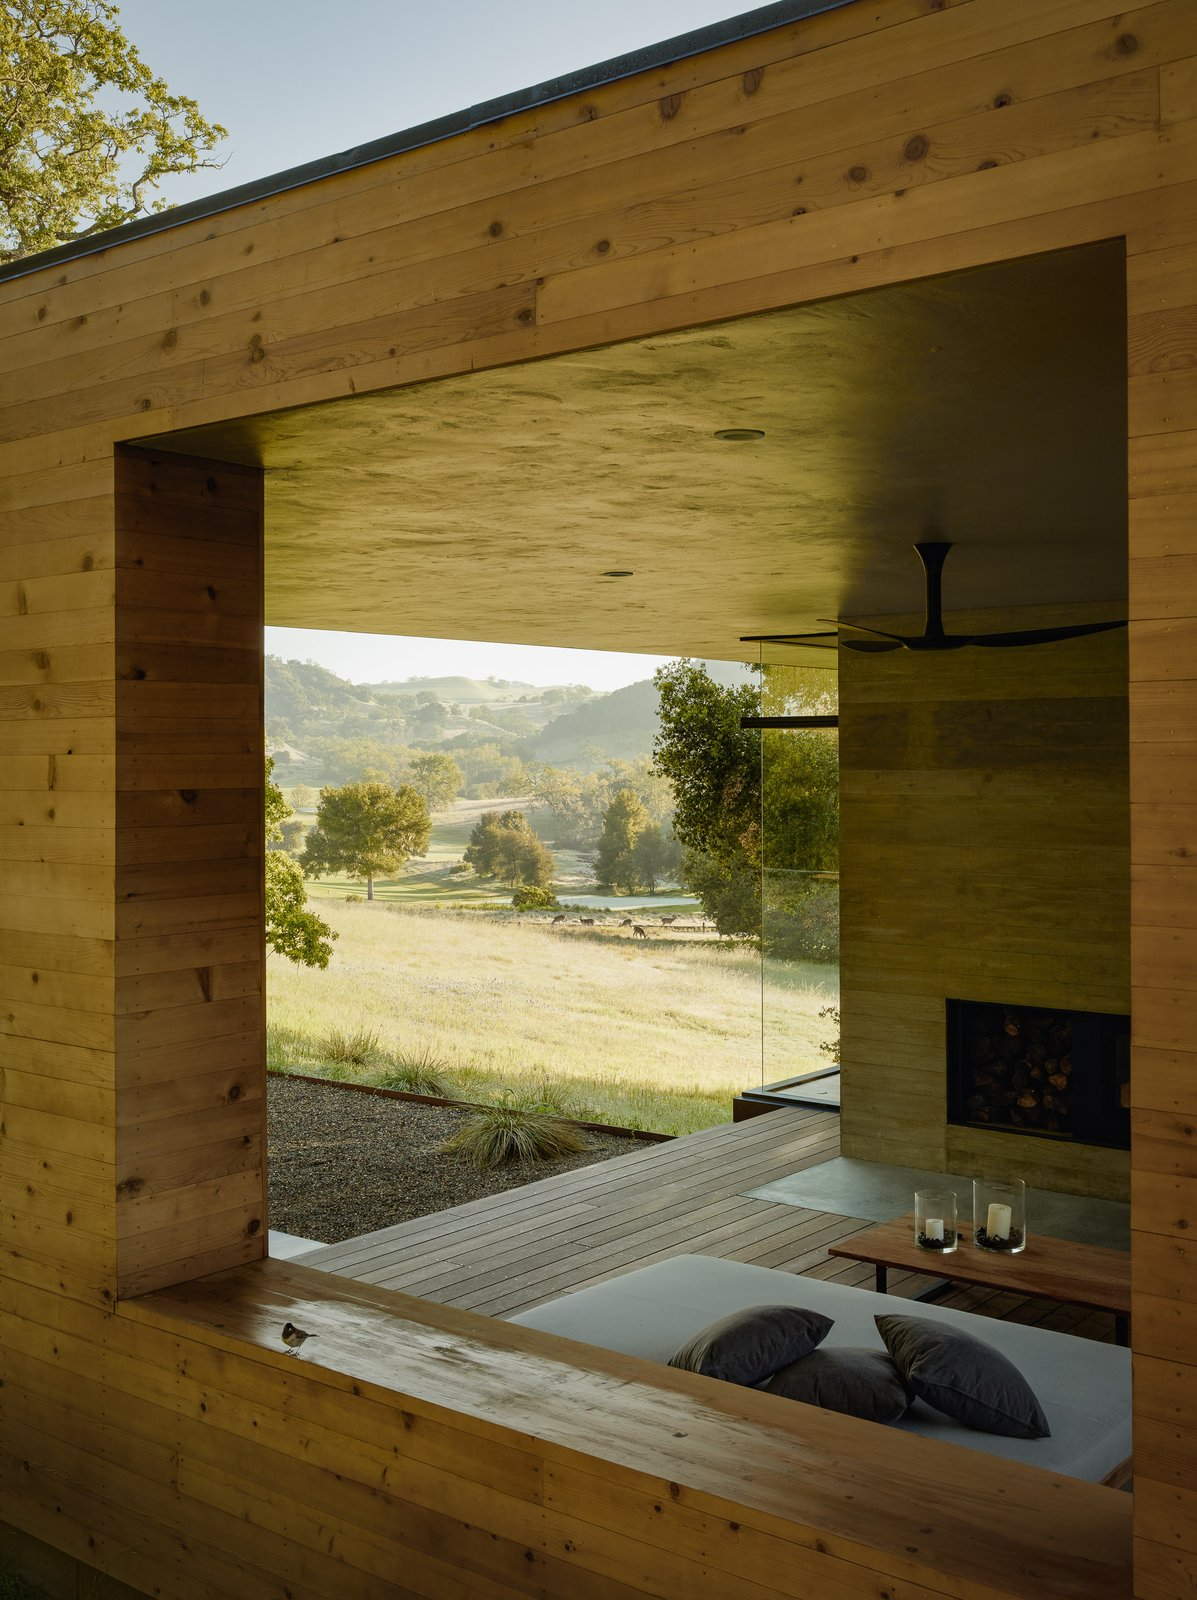 the-interior-courtyard-of-the-home-faces-northeast-looking-out-over-the-rolling-hills.jpg